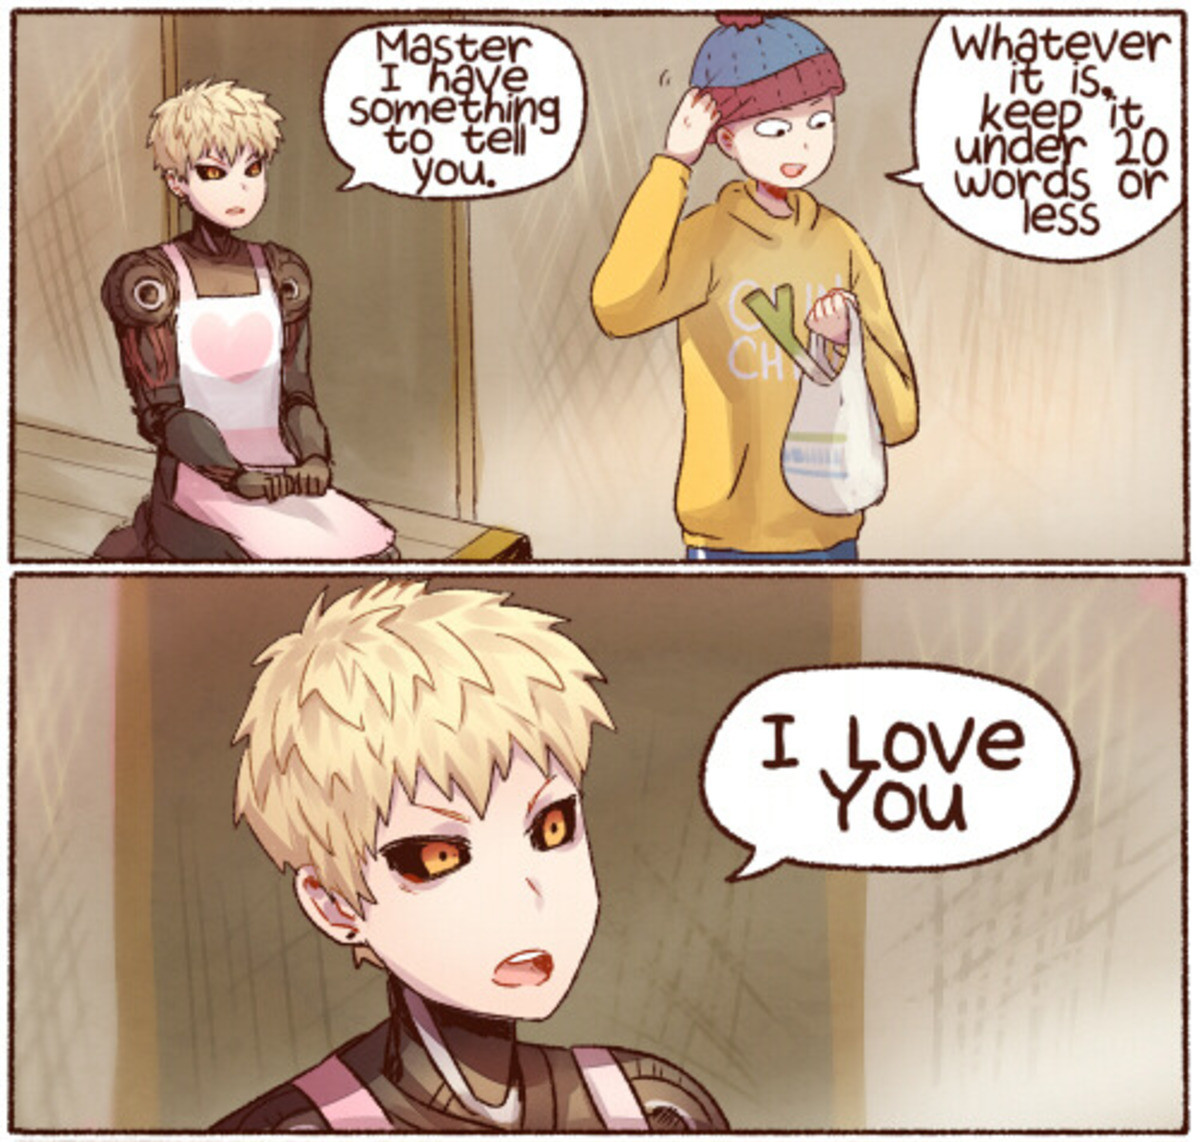 Genos only has eyes for his master. .. I, too, would like to eat Nabe